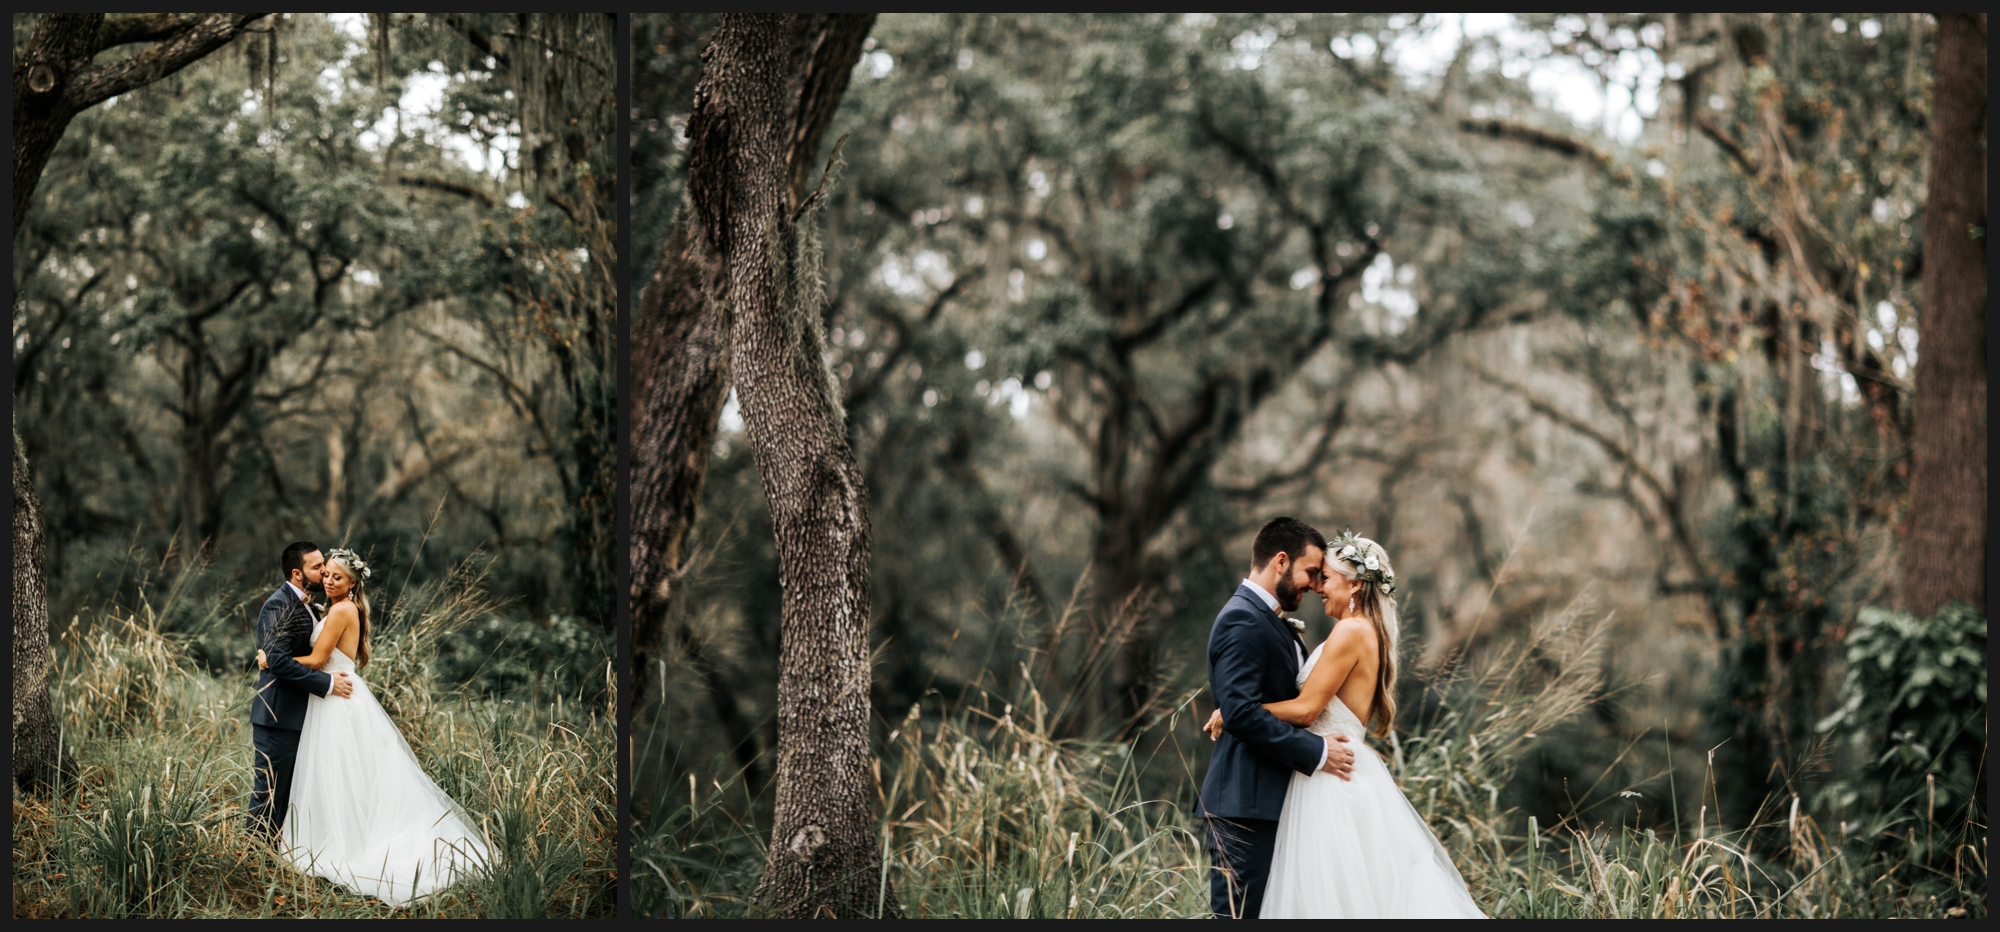 OrlandoWeddingPhotographerMattSierra_0026.jpg